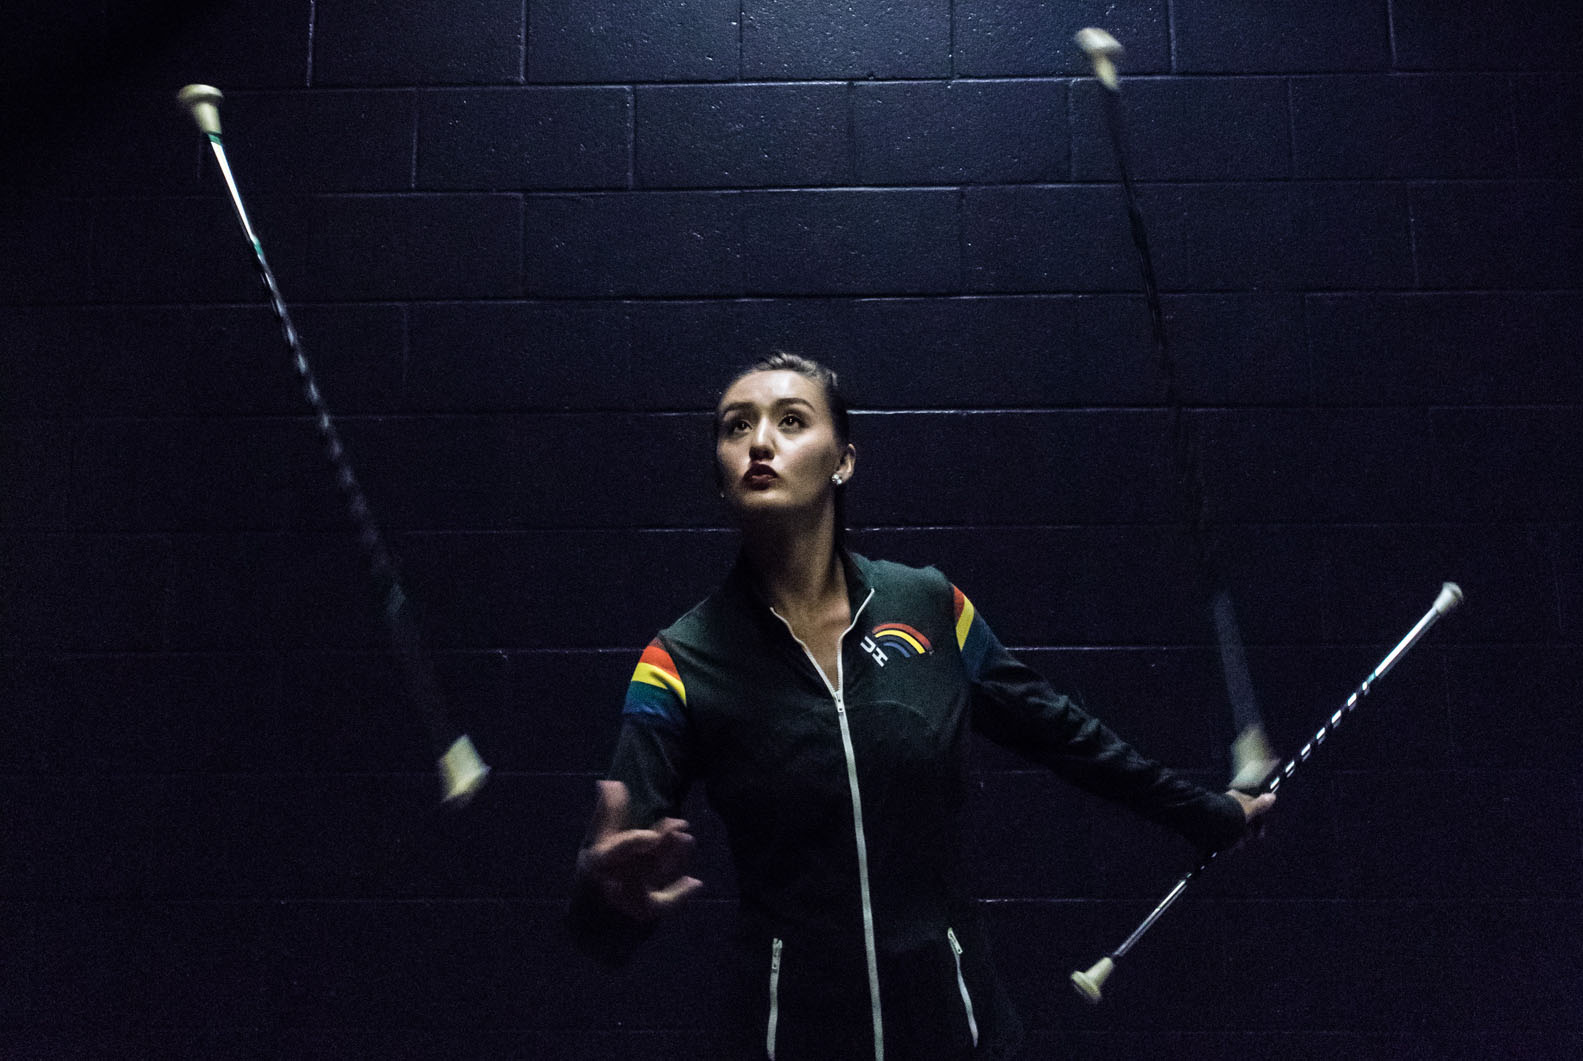 <p>Emily Dooms warms up for a night of baton twirling to entertain the crowd at a University of Hawaii volleyball game Oct. 7 at the Stan Sheriff Center. She&#8217;s been twirling for 18 years and has competed internationally for the United States Twirling Association.</p>